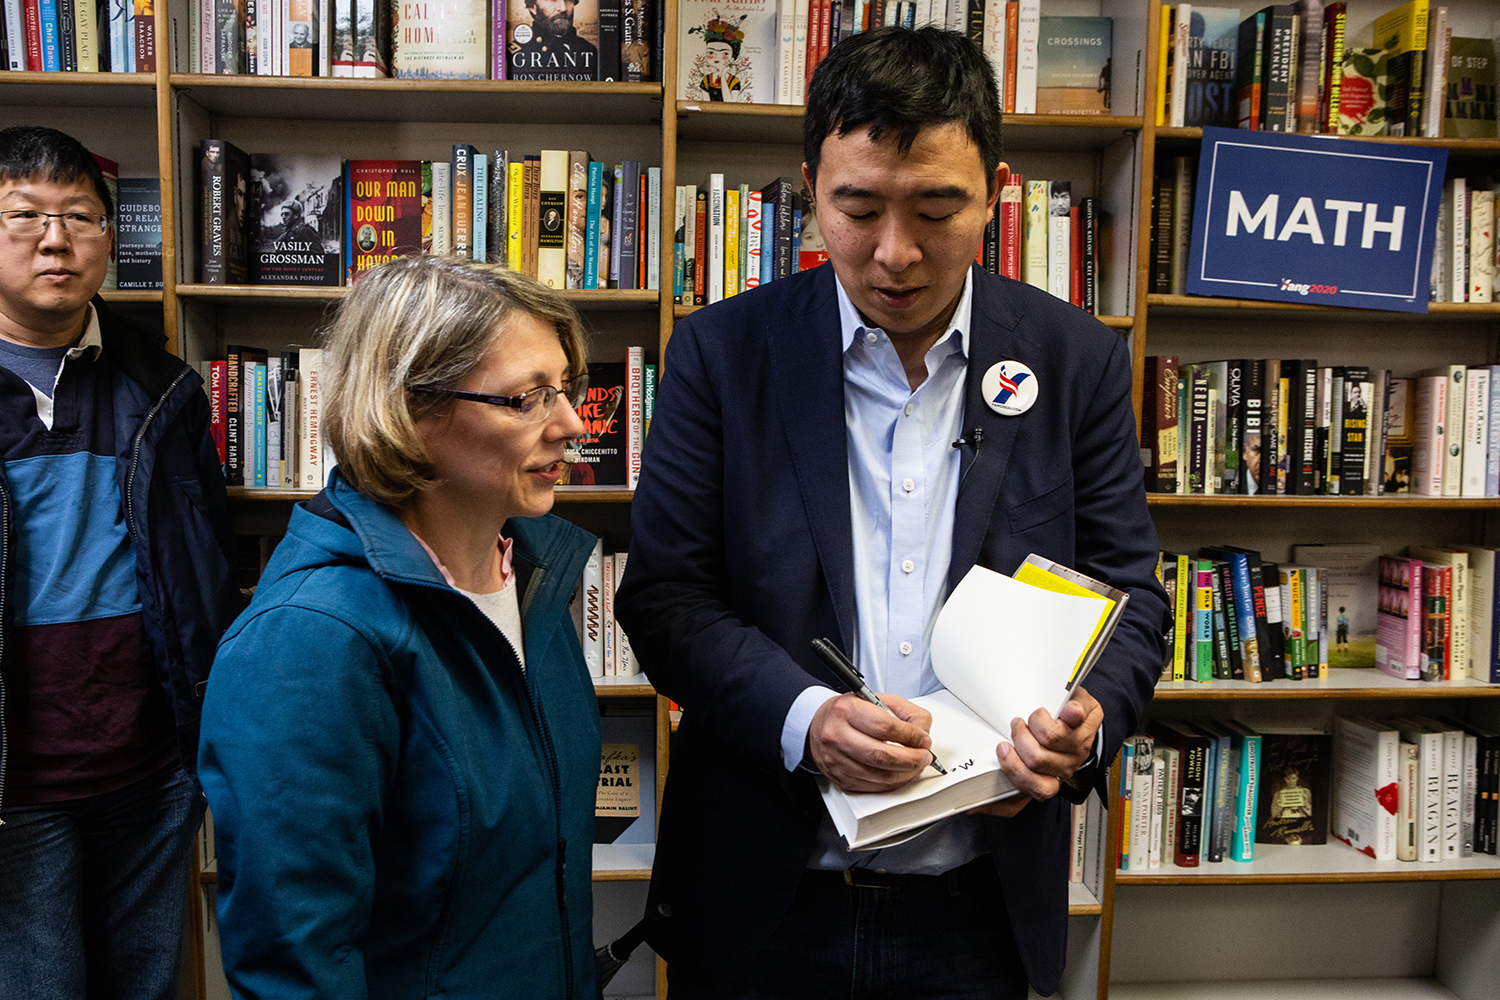 Democratic presidential hopeful Andrew Yang signs an attendee's copy of his book